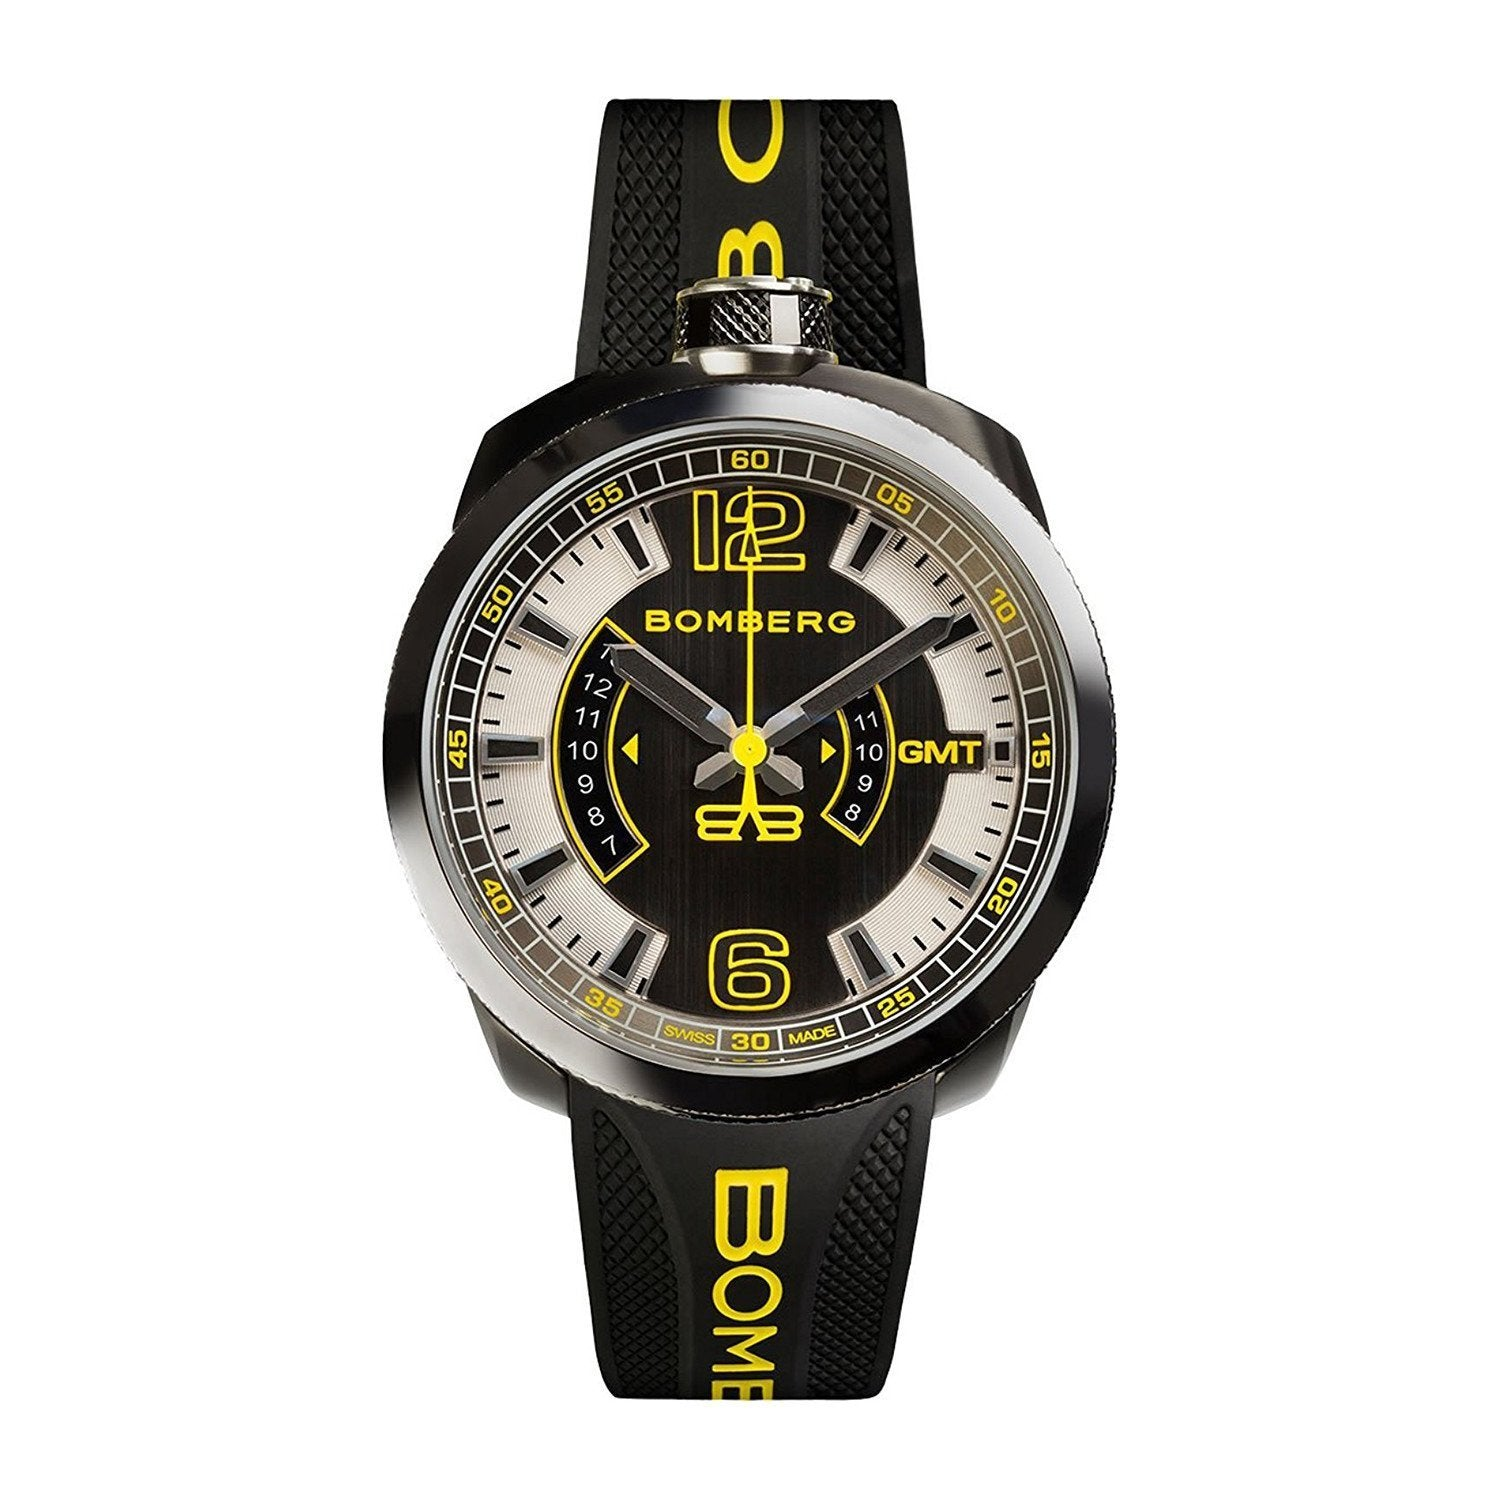 Bomberg BOLT-68 GMT Yellow - Watches & Crystals